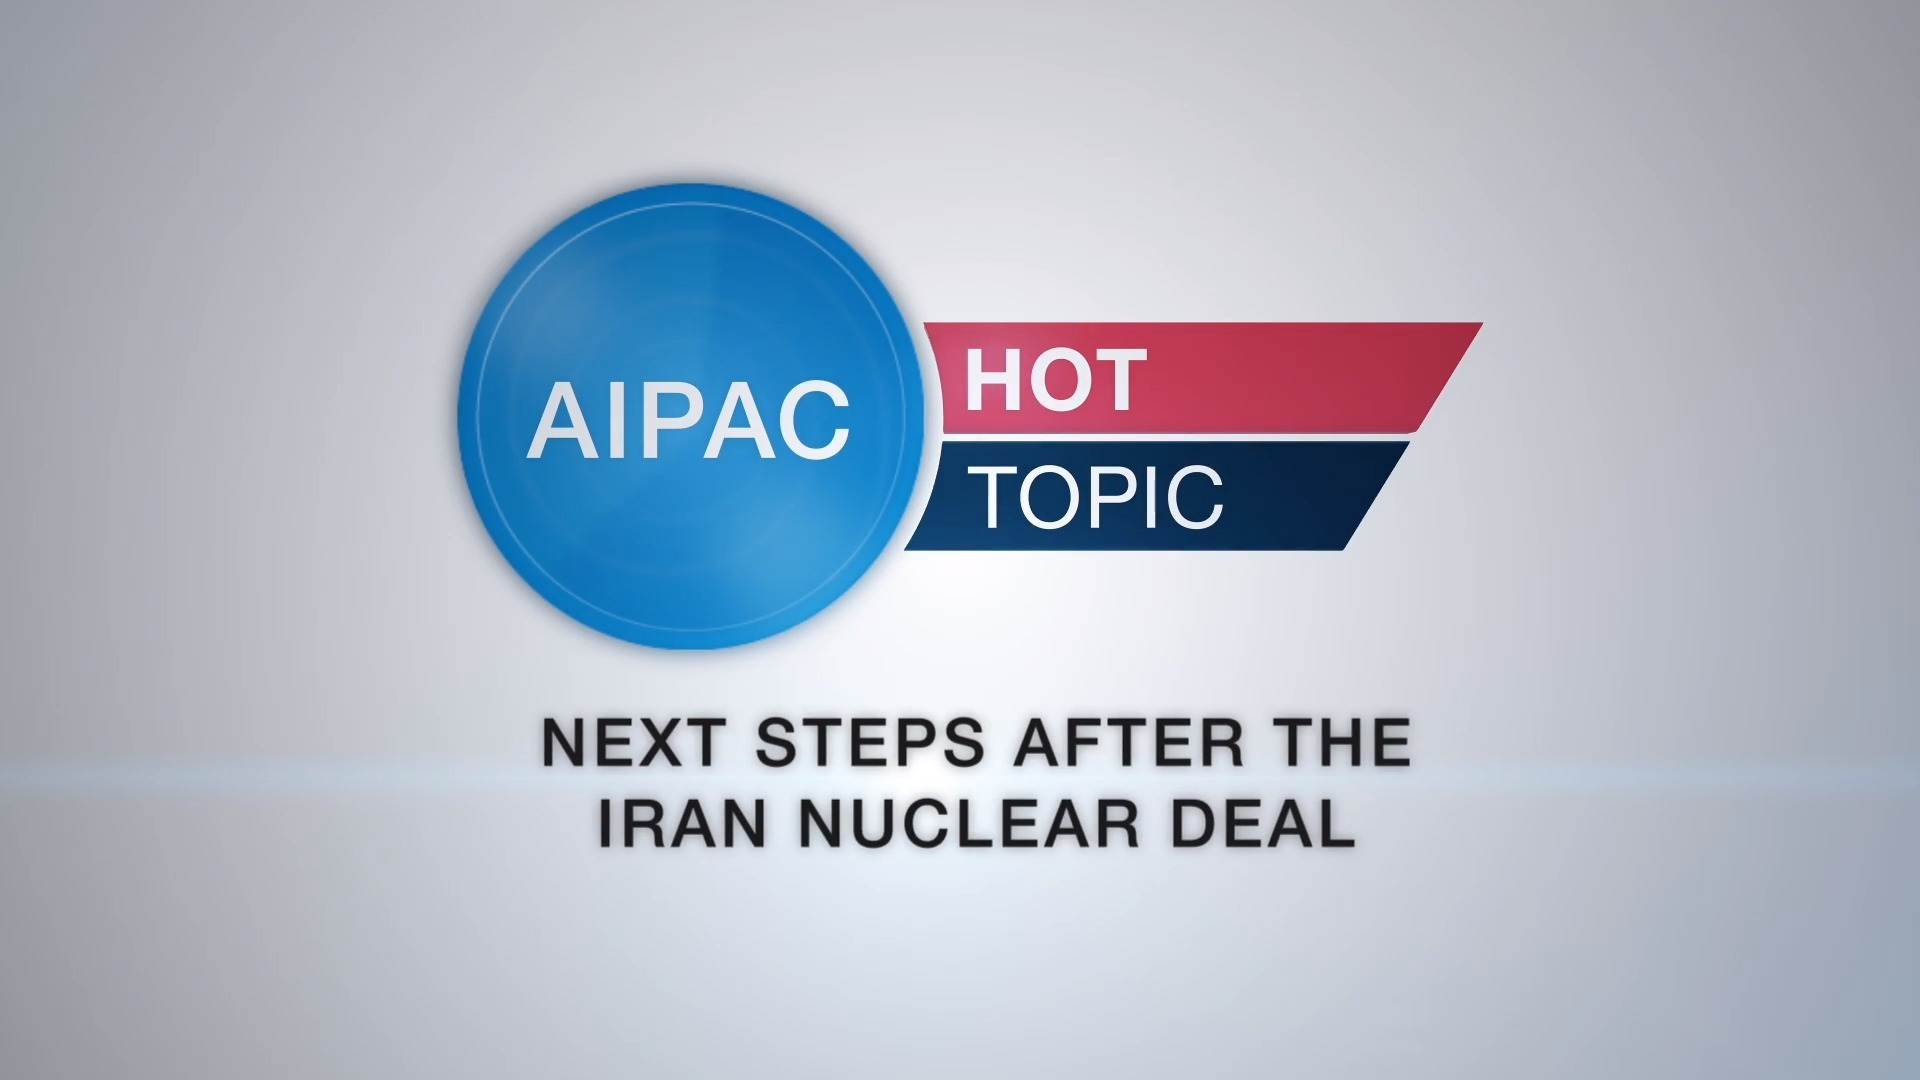 Hot Topic - Next Steps after the Iran Nuclear Deal